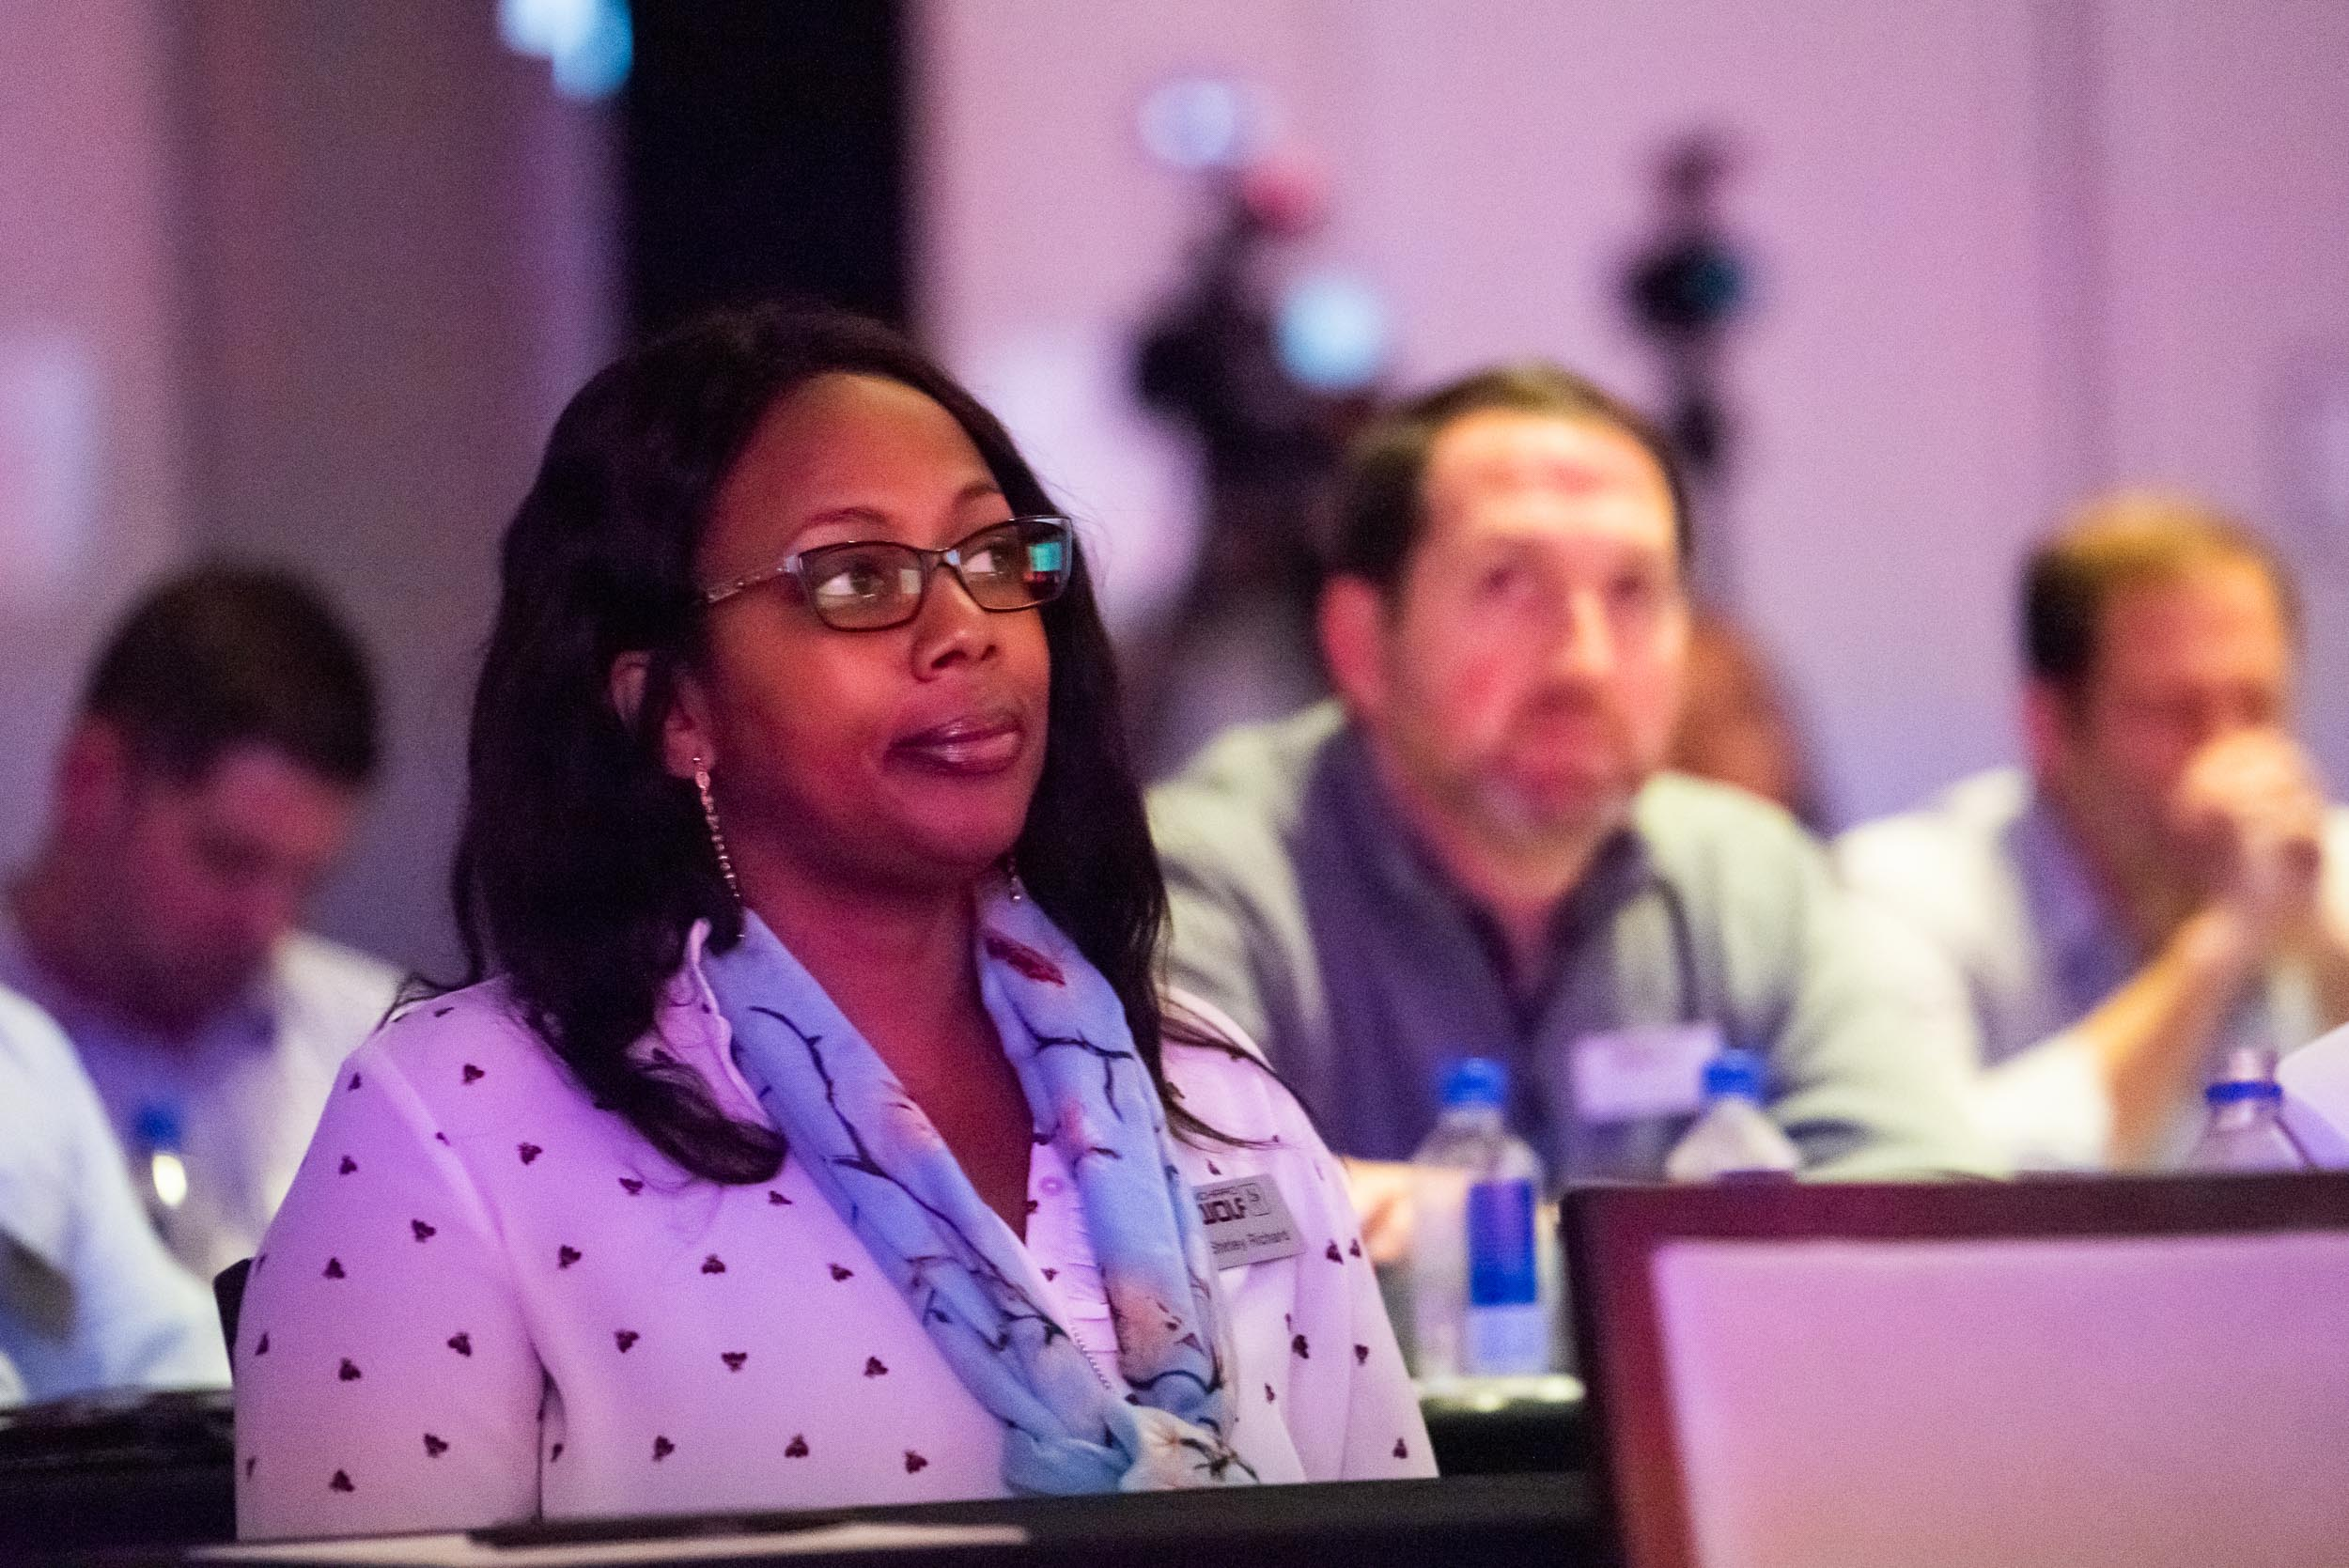 2019 National Sales and Marketing Meeting - mark campbell photography-80_Resized_Resized.jpg